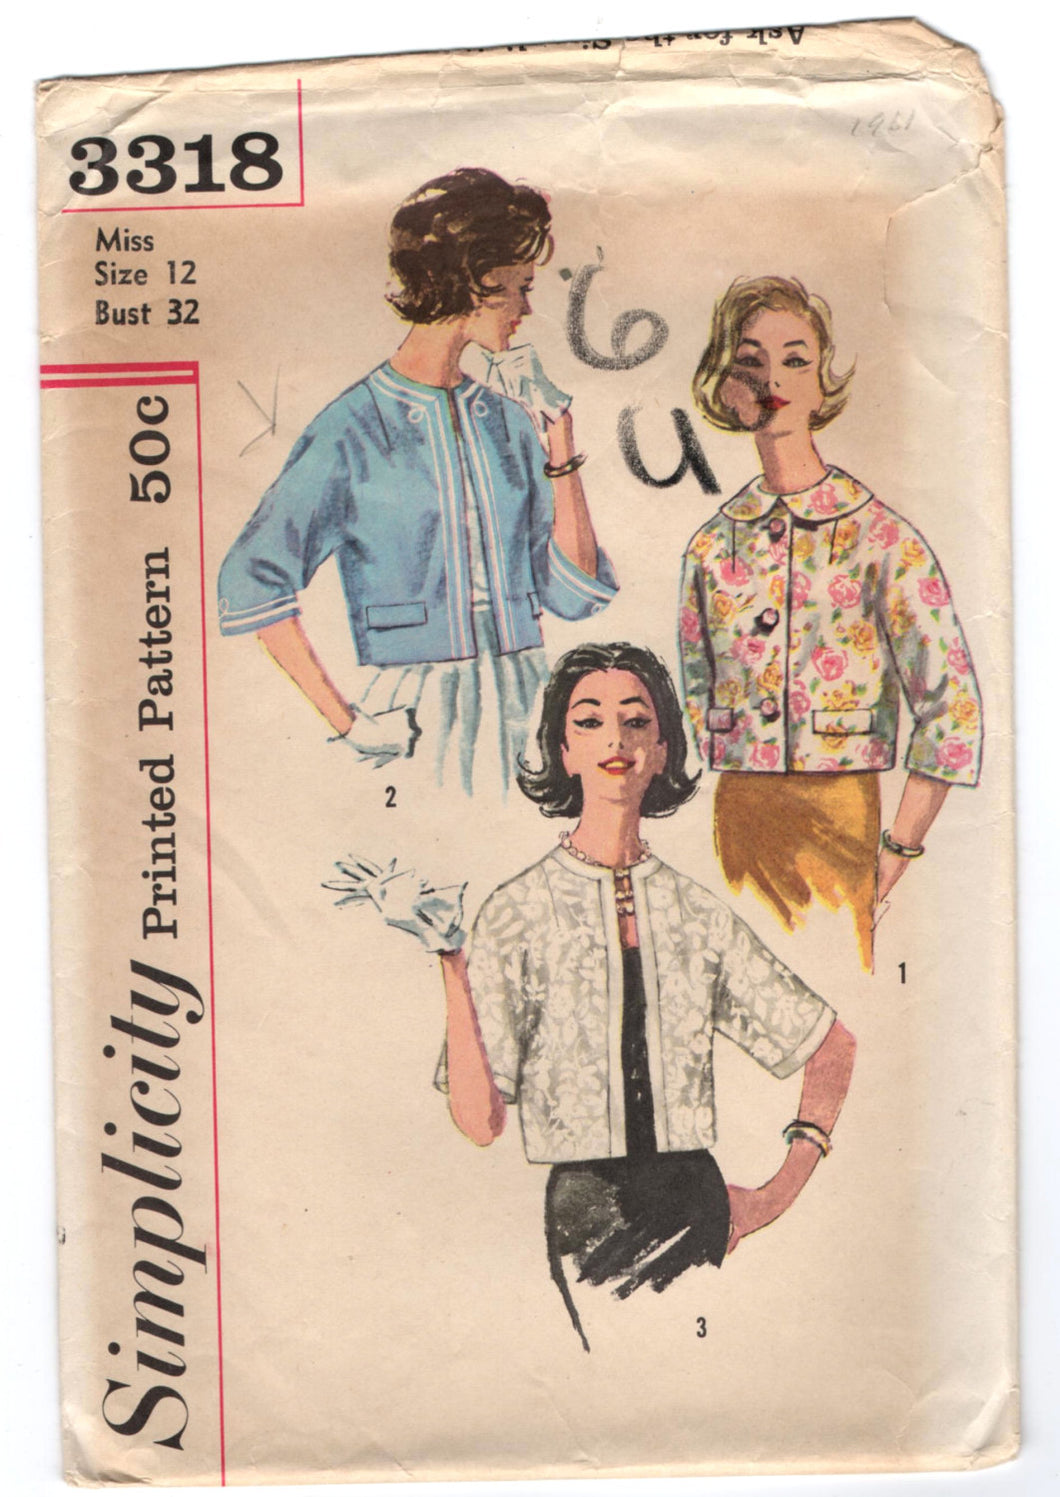 1960's Simplicity Reversible Jacket pattern with three-quarter sleeves - Bust 32